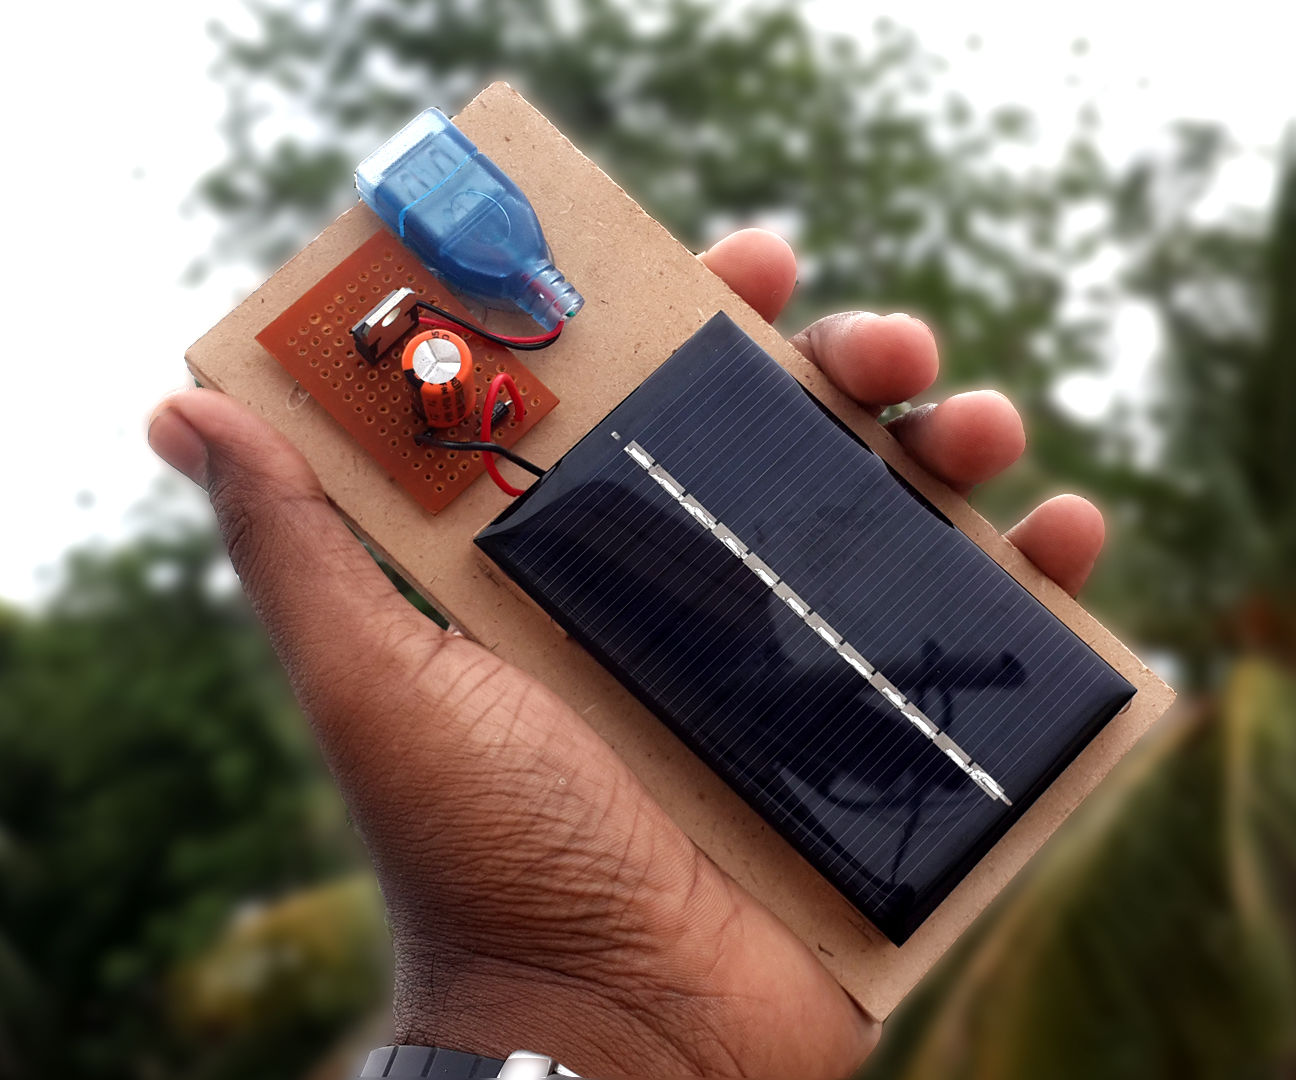 How to Make a Solar Powered USB Mobile Phone Charger -DIY